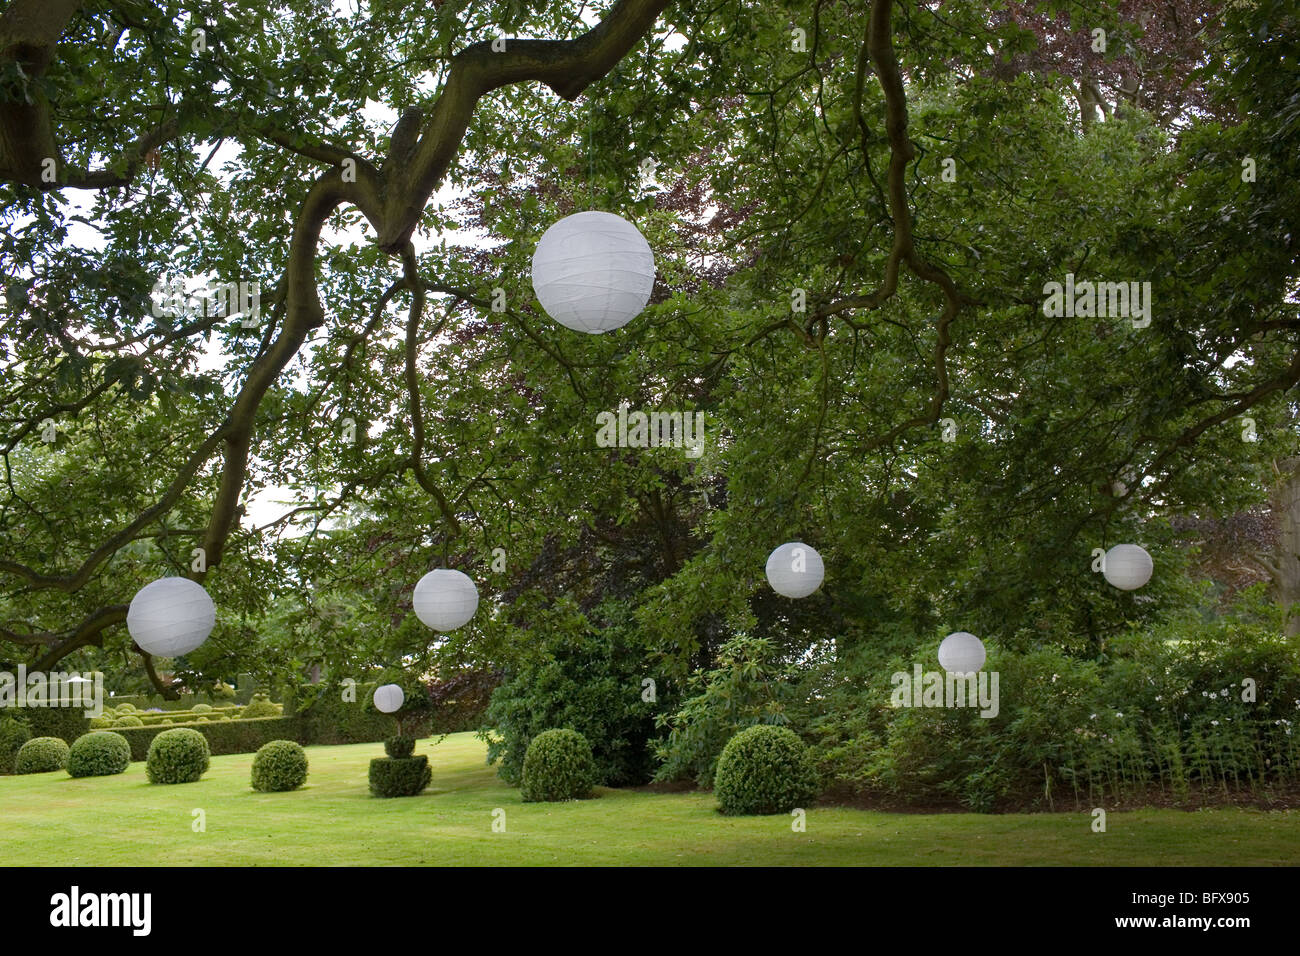 Lanterns hang from trees in an English garden. - Stock Image